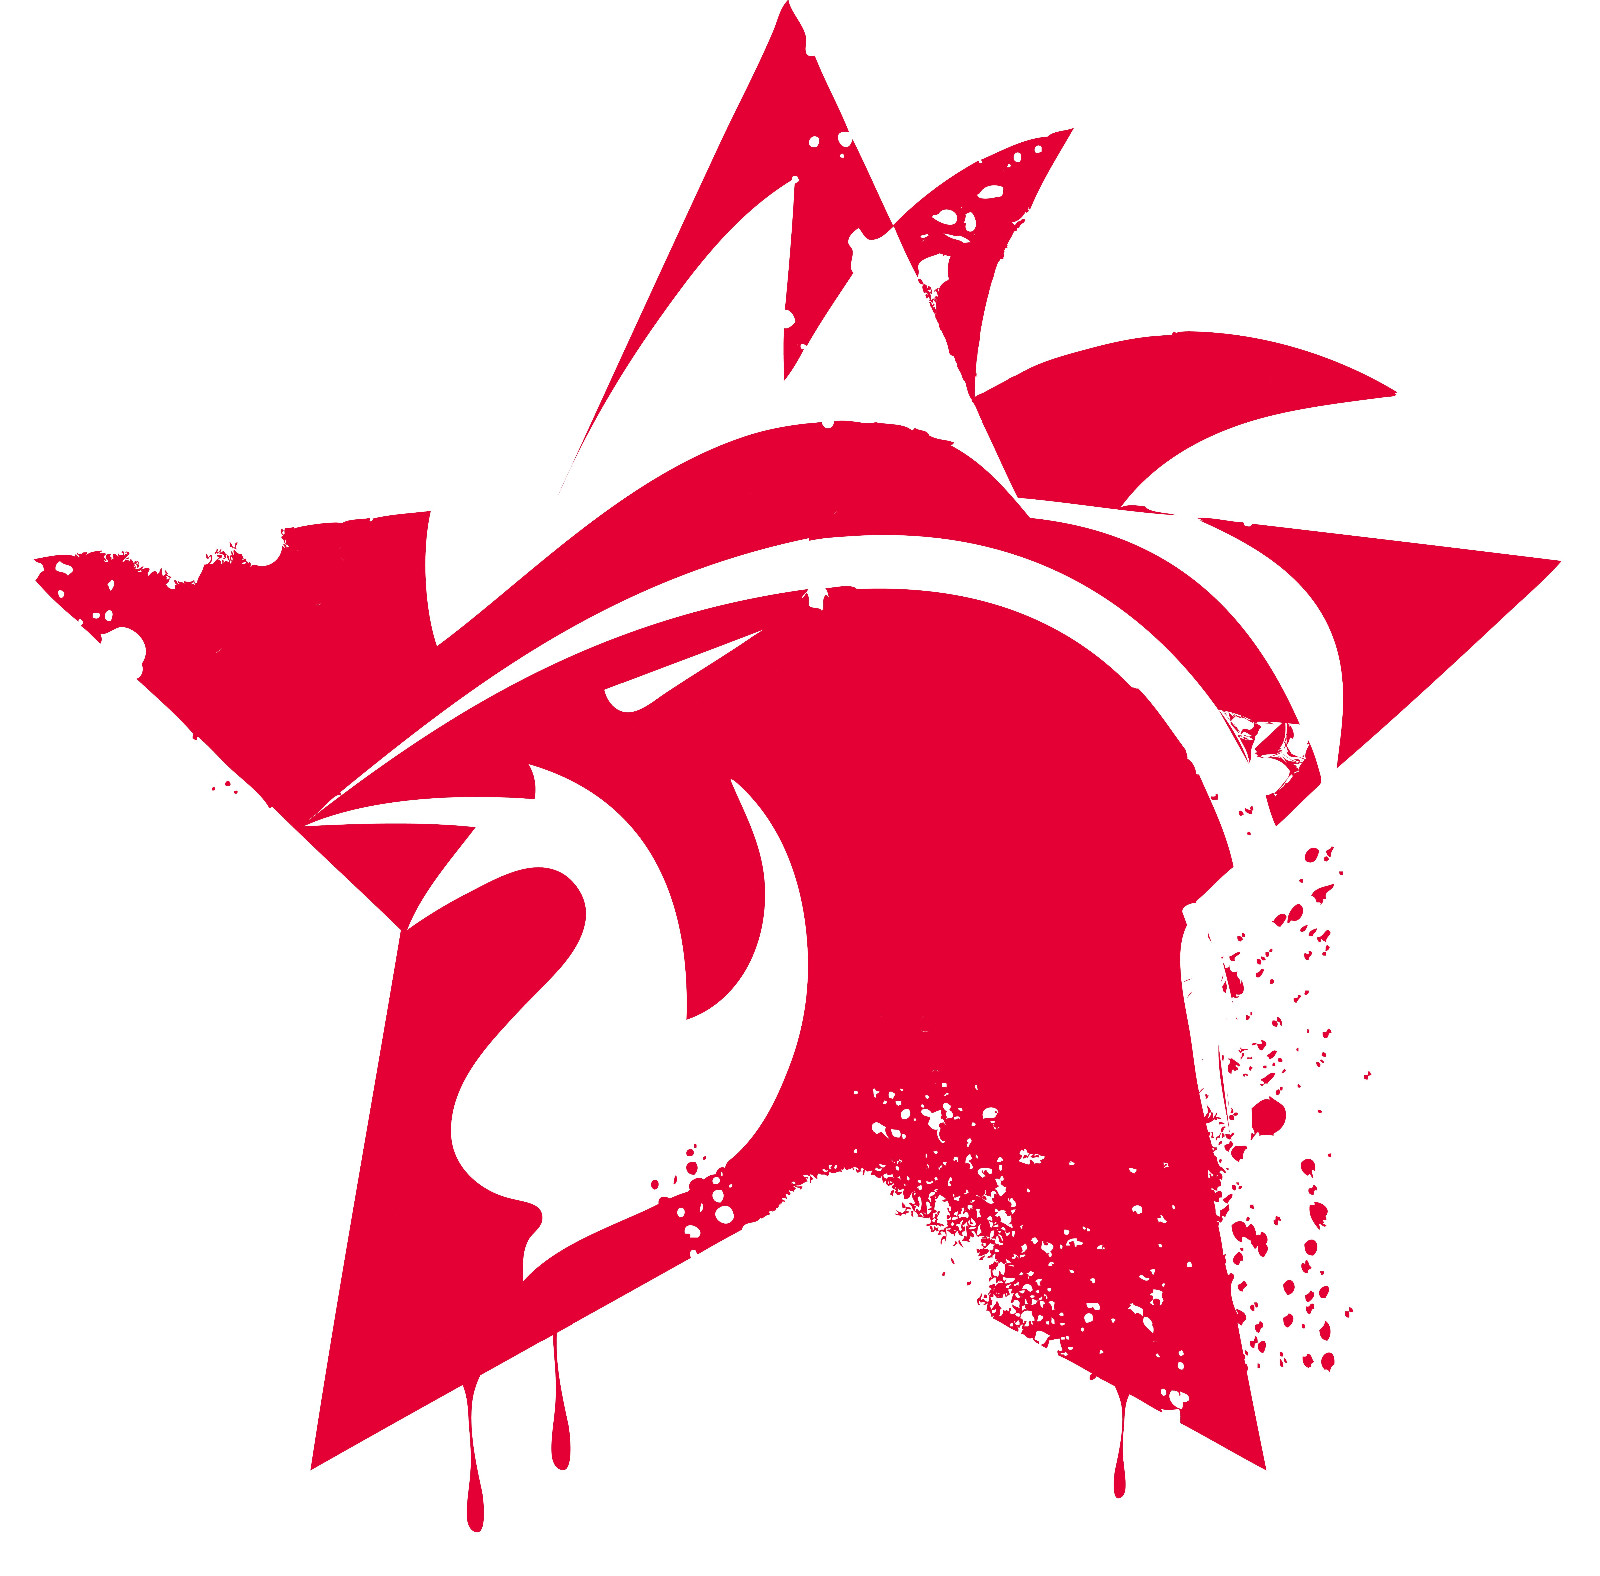 201806/The_Rooster_logo_staronly.jpg